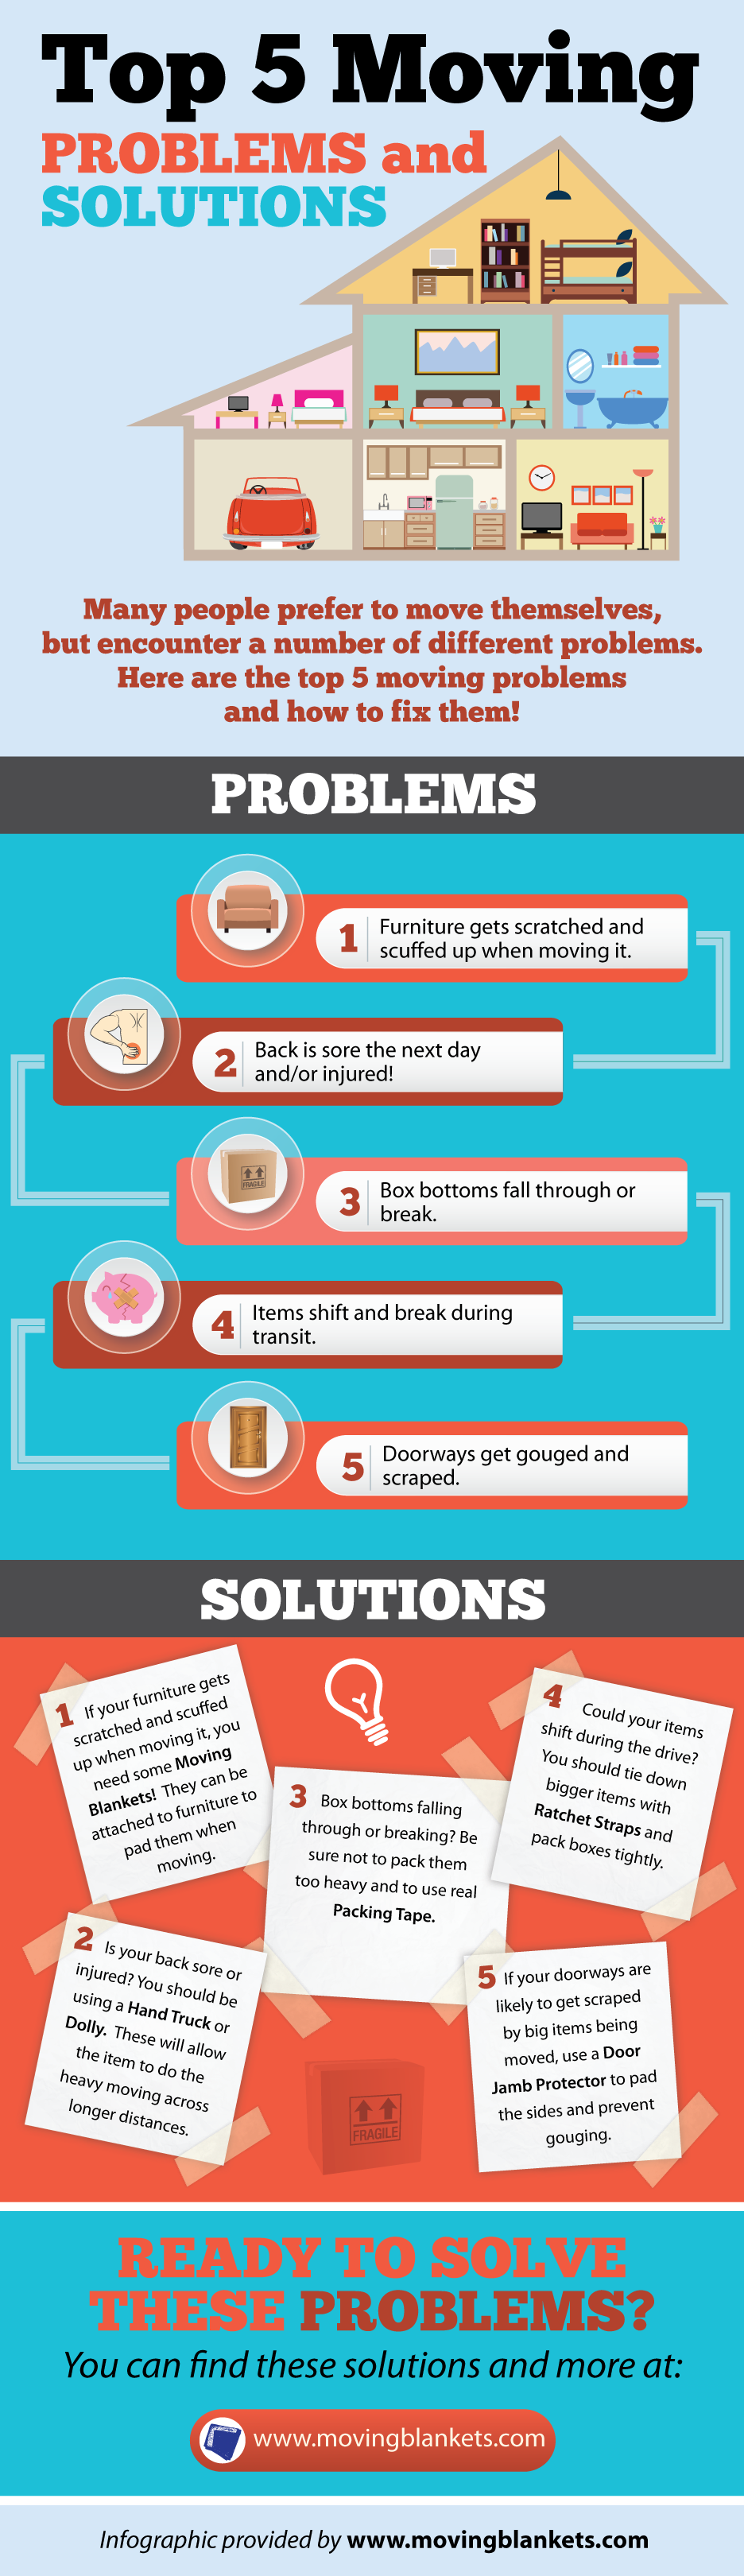 Top 5 Moving Problems and Solutions